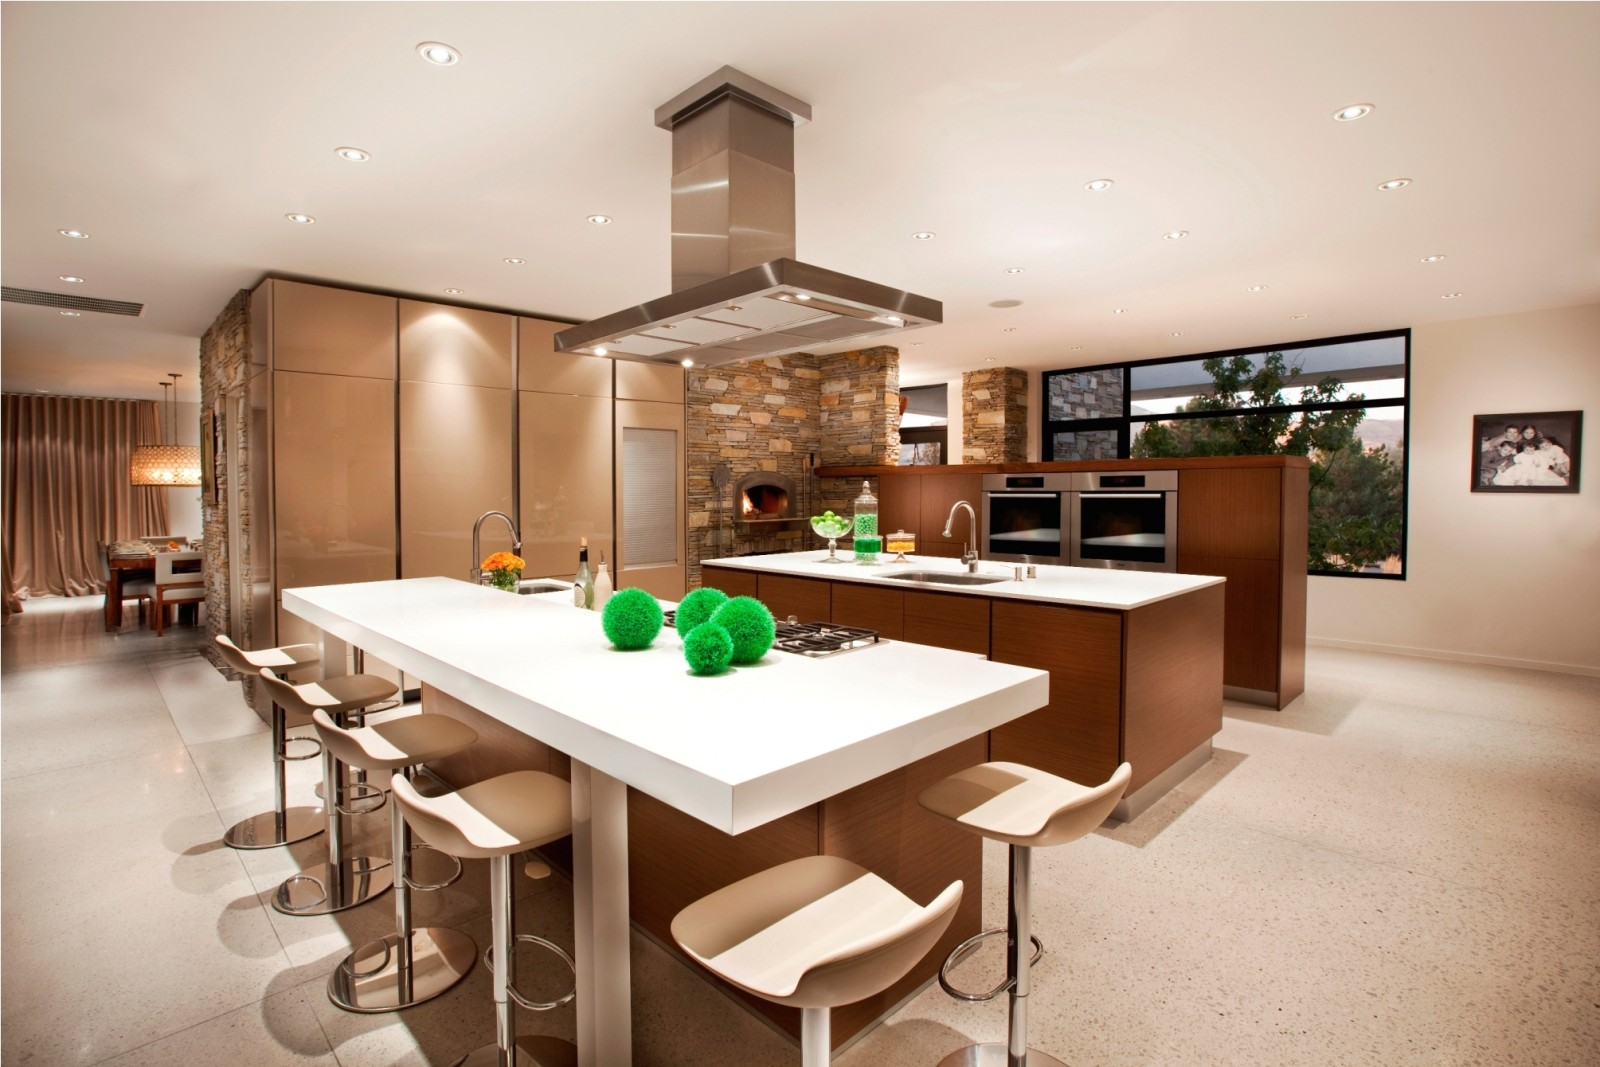 Open kitchen designs for Cuisine americaine design